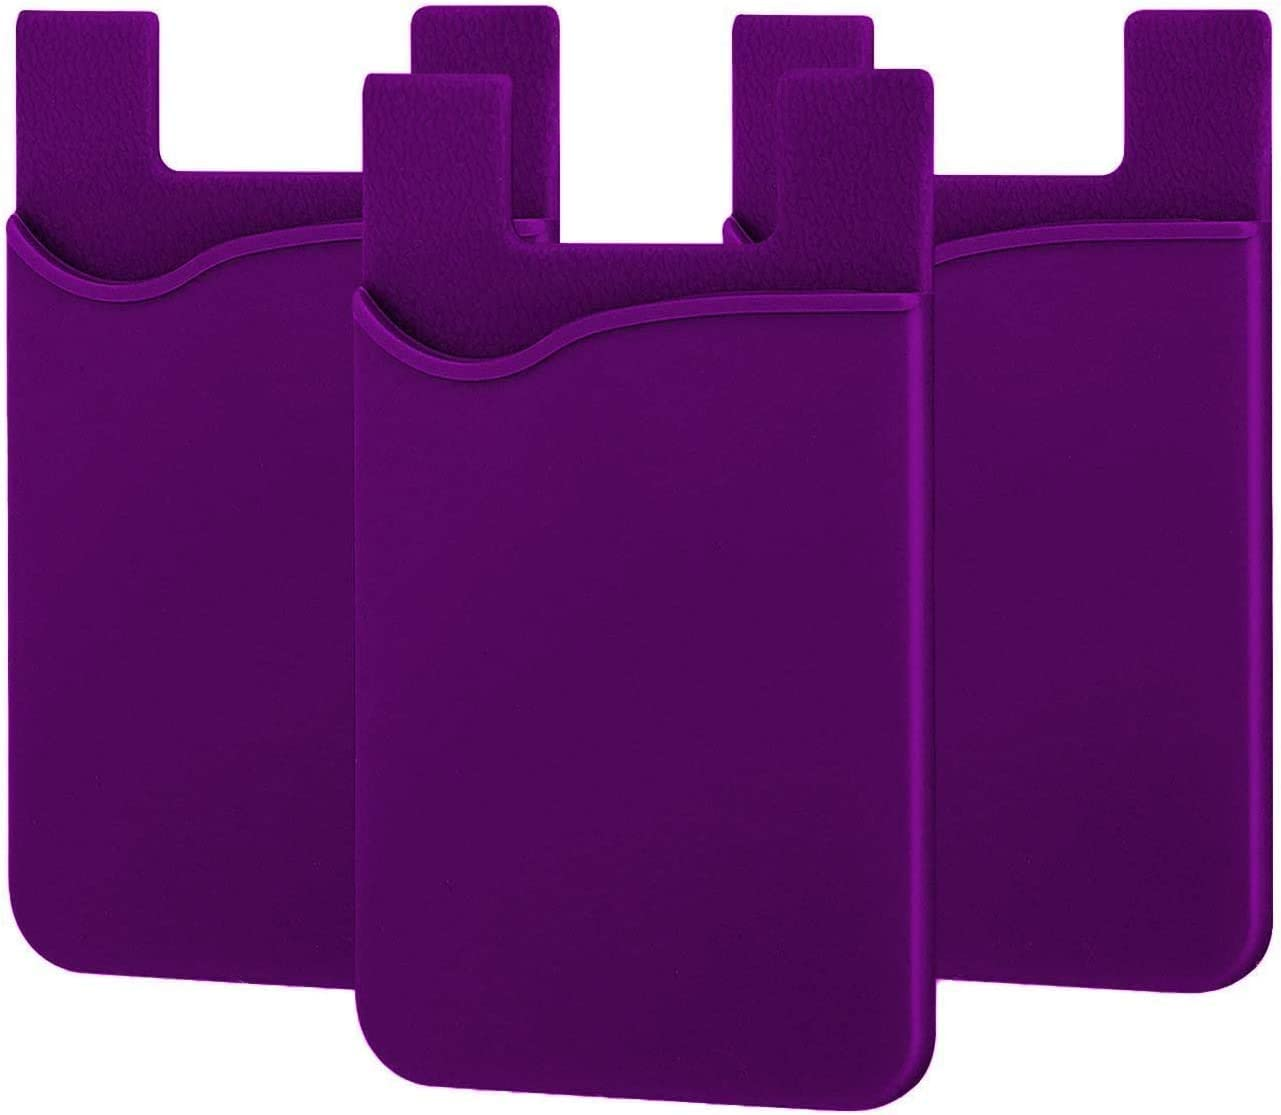 Localtech | Cell Phone Silicone Card Wallet, with 3M Adhesive Stick-on fits Apple iPhone Samsung Galaxy Android Most Smartphones, Table, Refrigerator, Door. (3 Pack) (Purple)